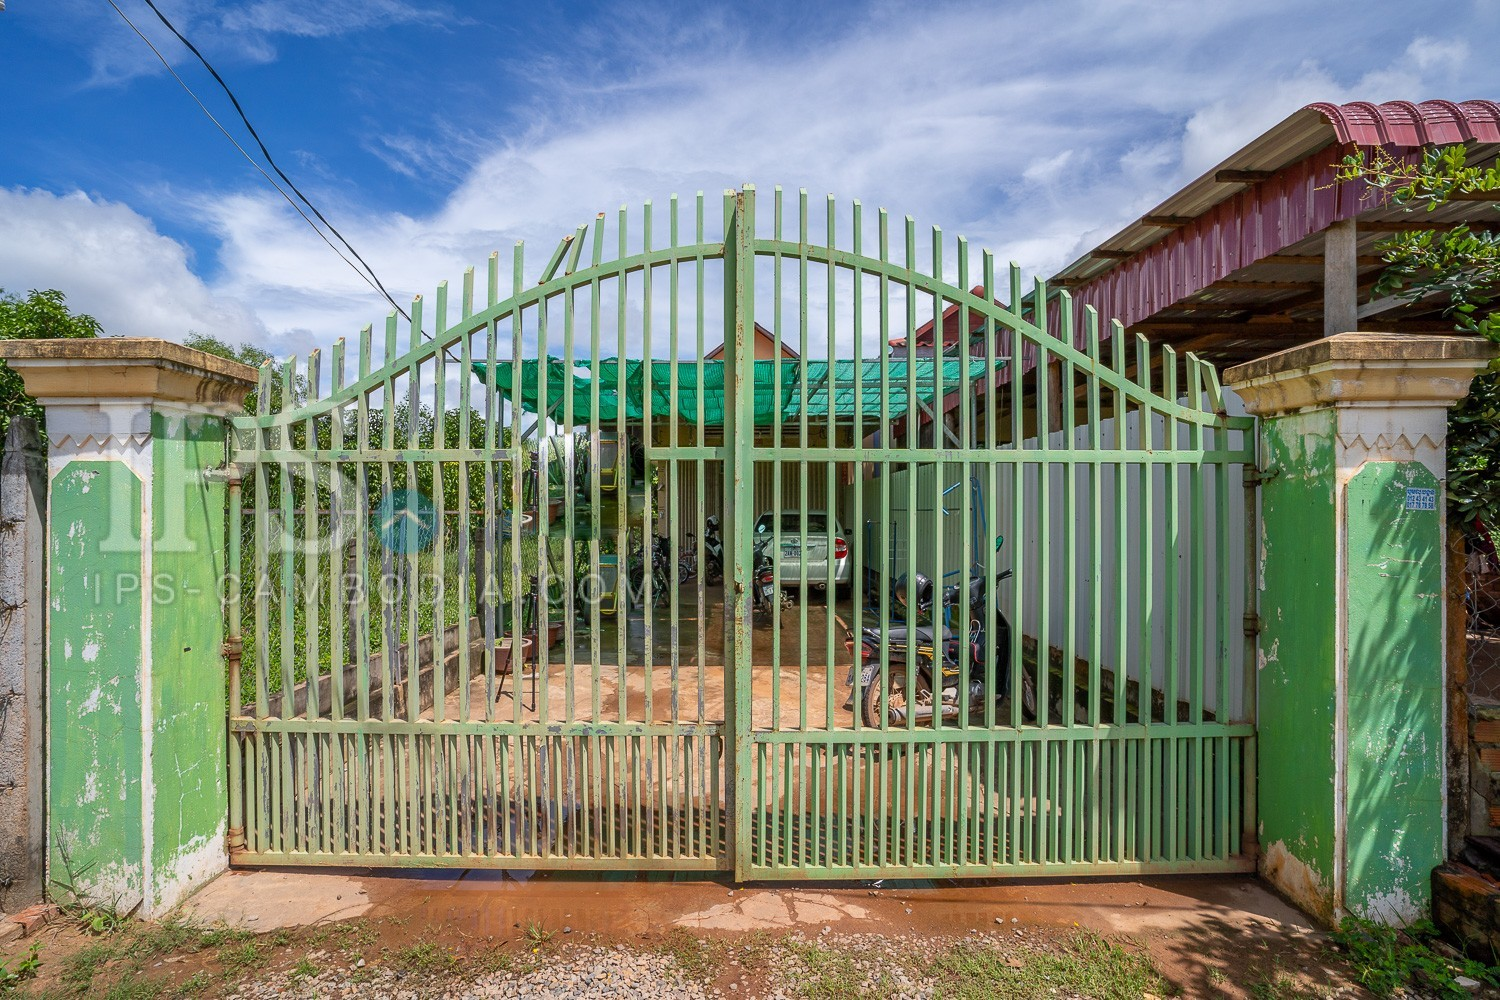 2 Bedroom House For Sale - Svay Thom, Siem Reap